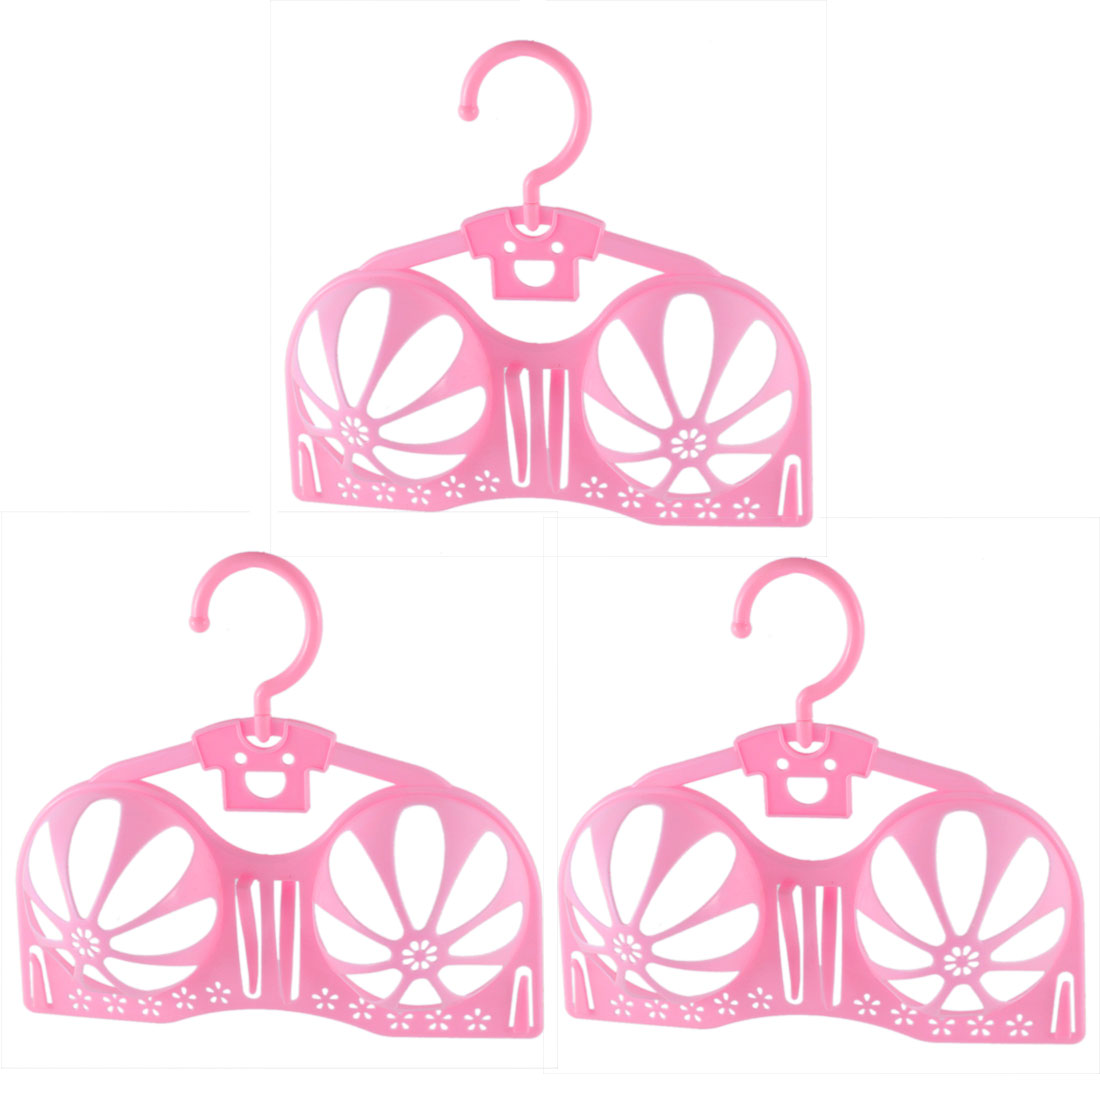 Bikini Bra Brassiere Drying Storage Shaper Holder Hanger Organizer 3pcs